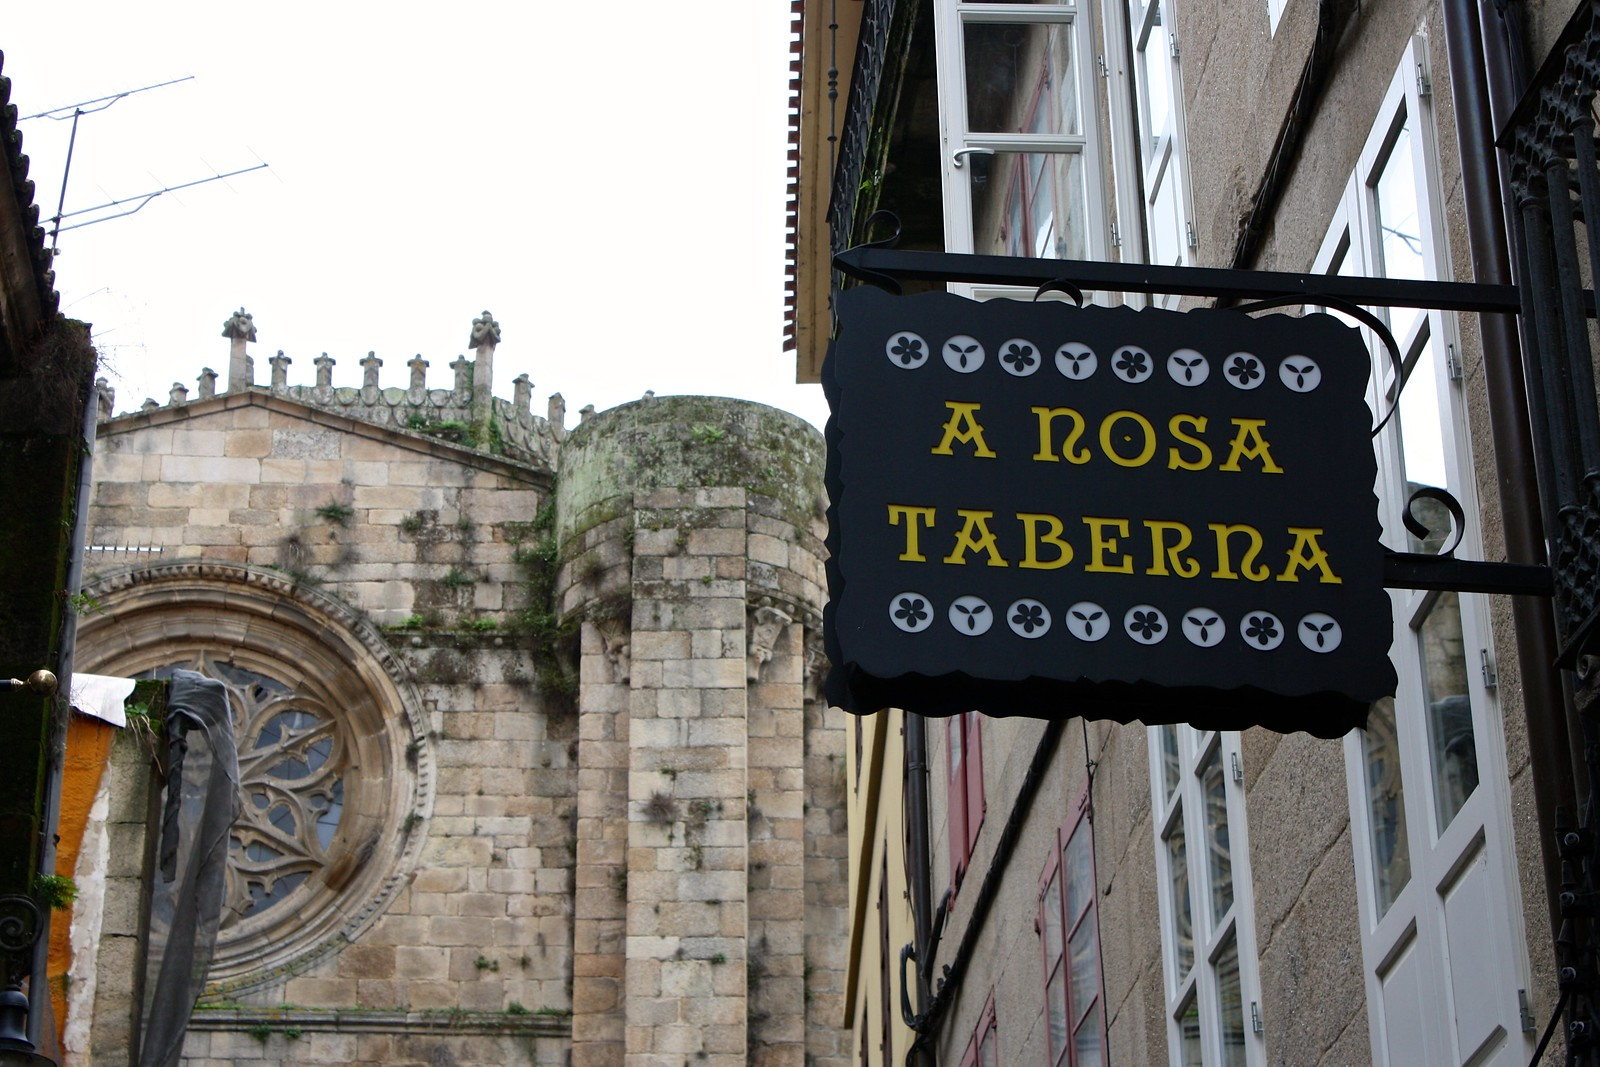 Galician words and lettering on a shop sign in Ourense, Spain